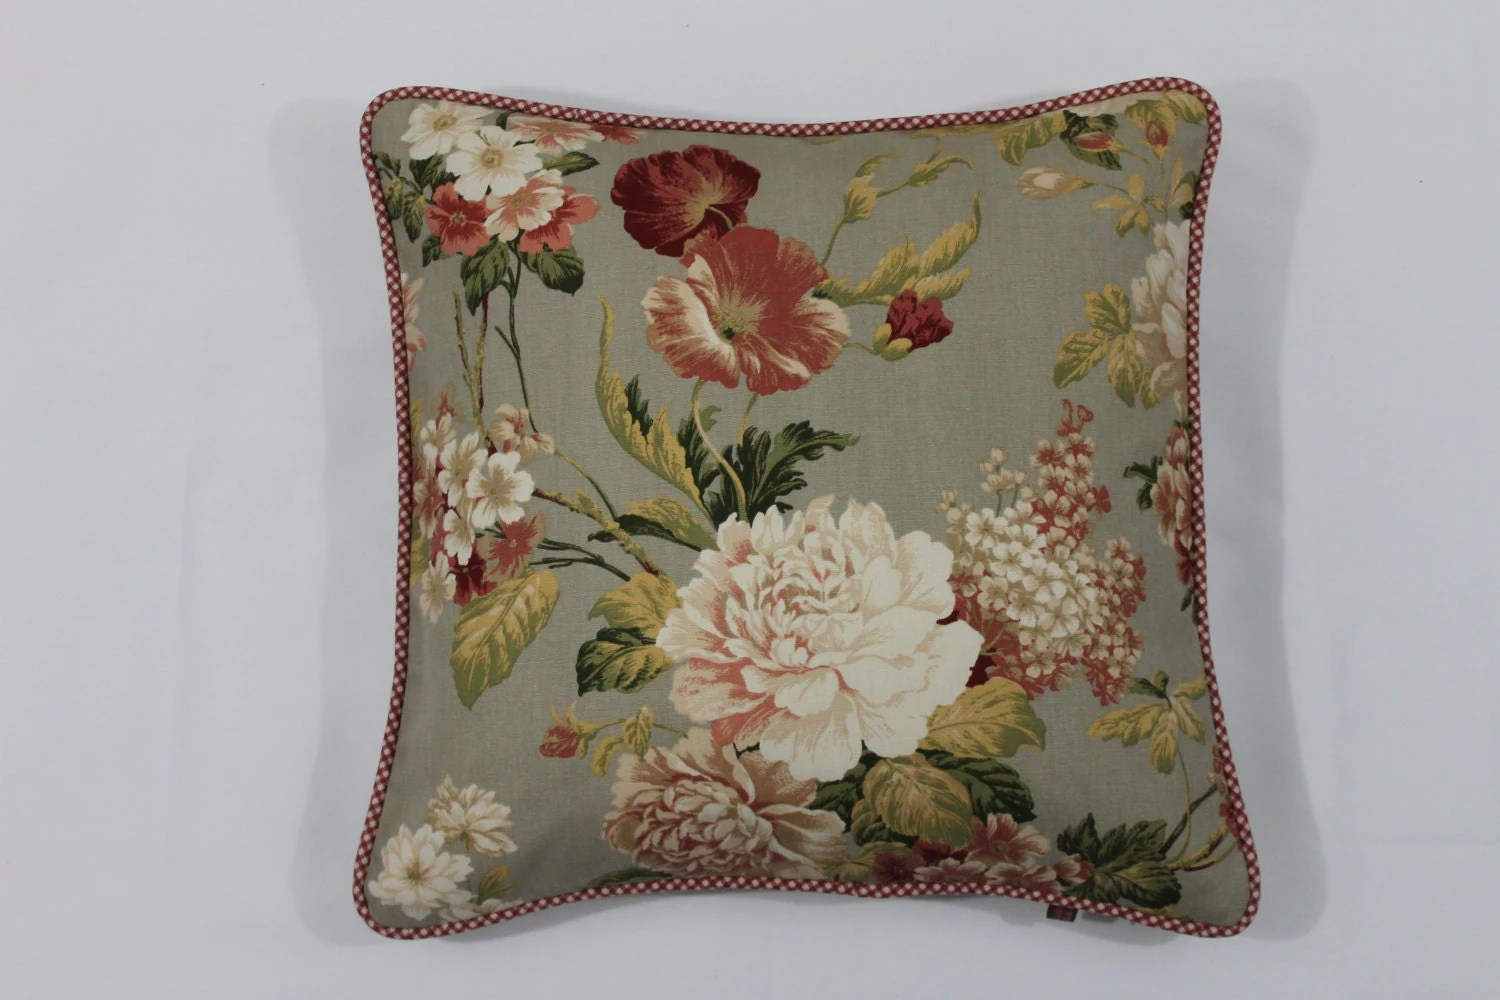 French Country Pillow CoverFloral Pillow Cover16x16 Pillow